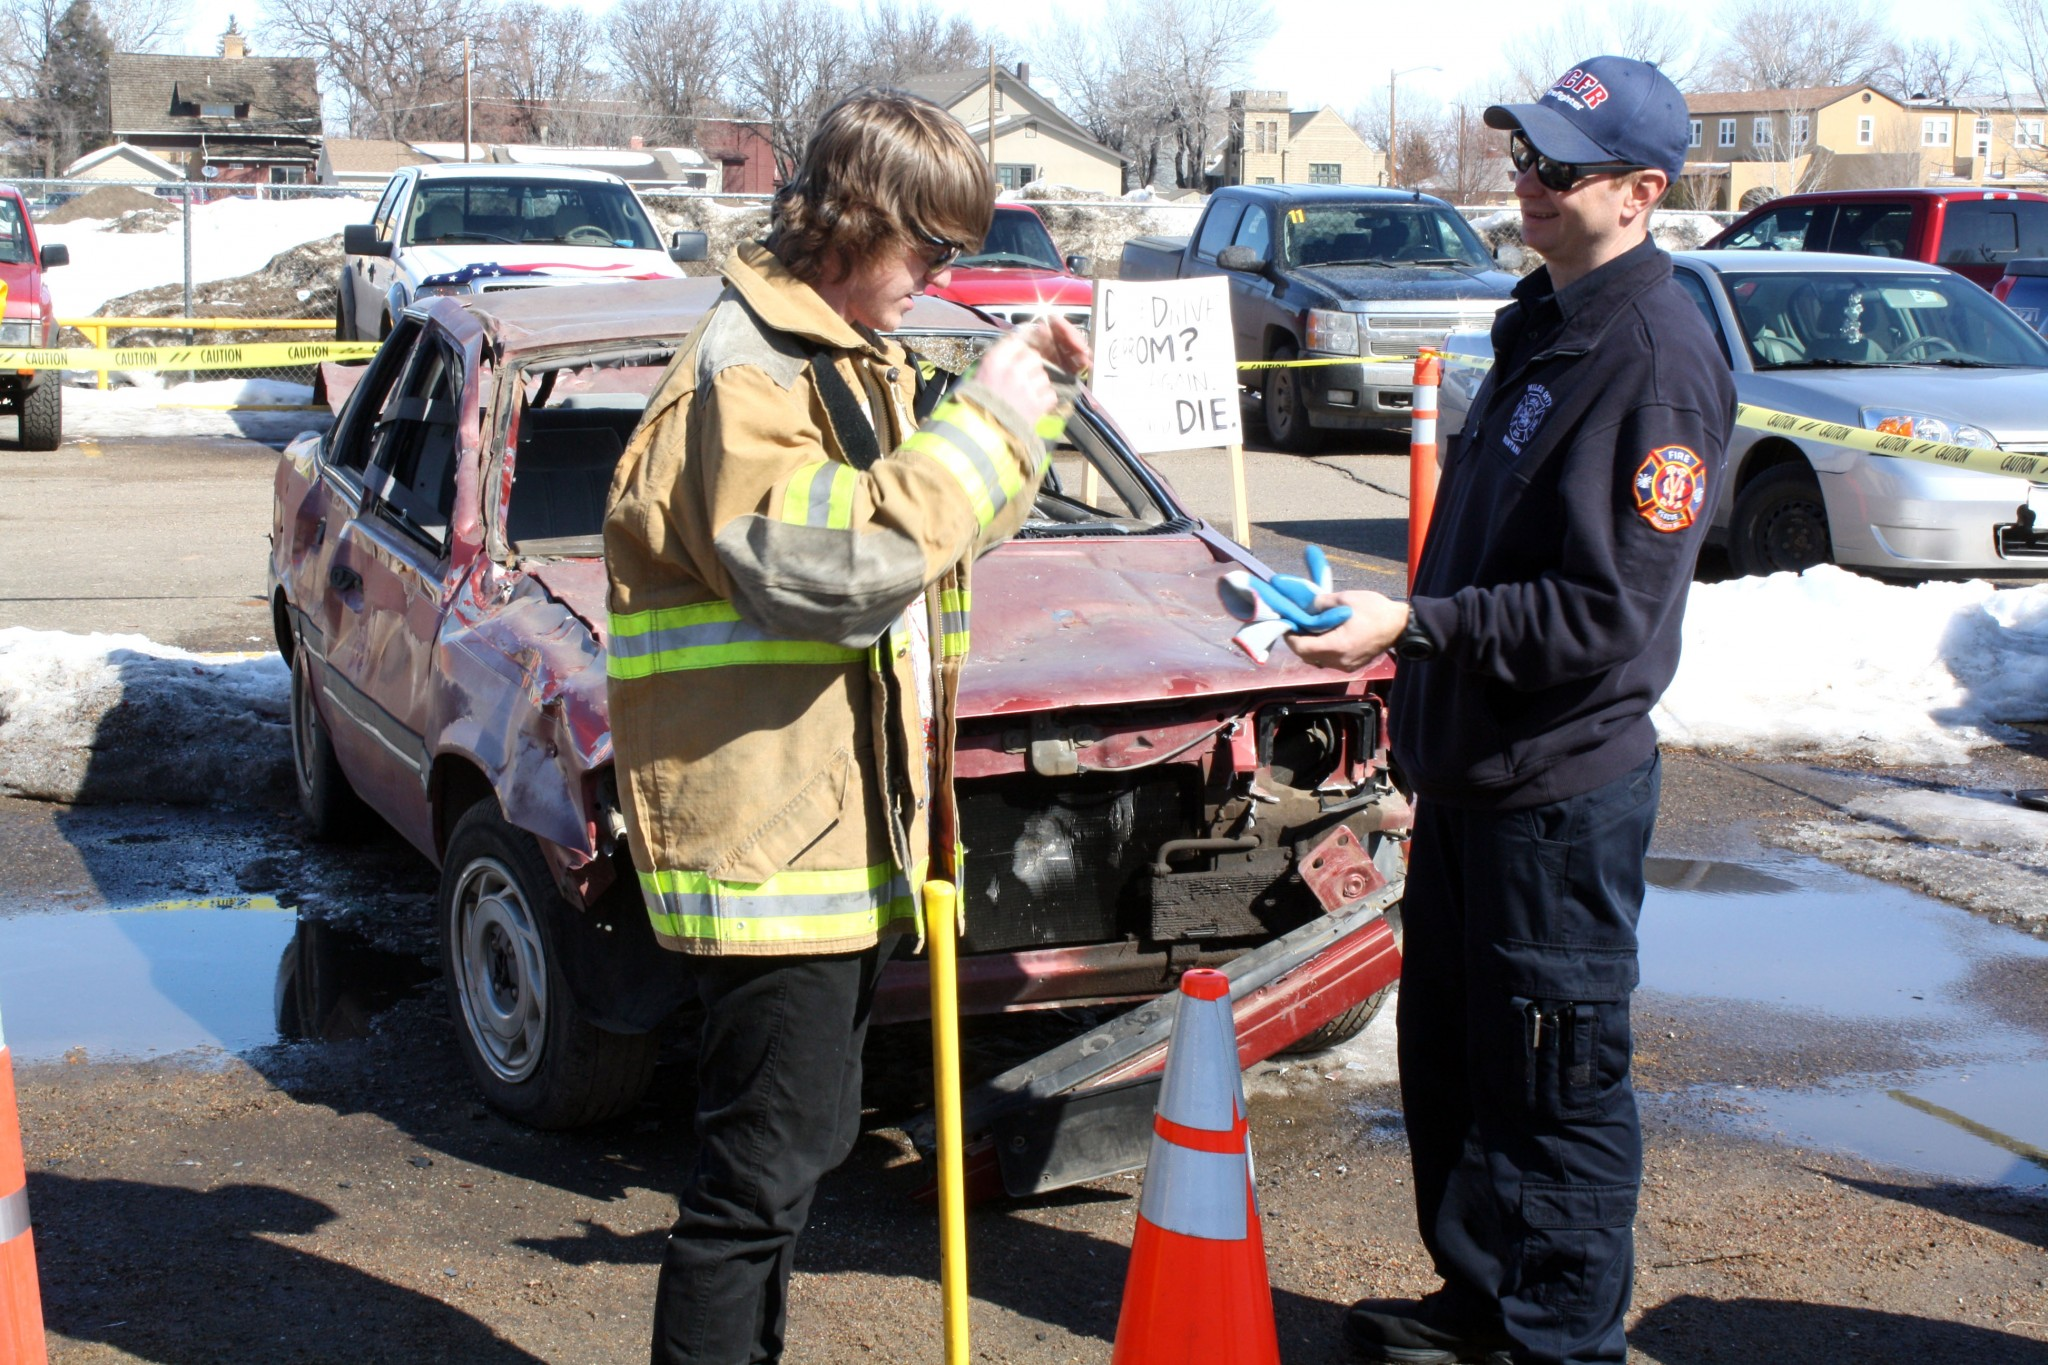 <strong>David Richter, a senior, puts on a pair of safety glasses, a heavy jacket, and a pair of work gloves provided by firefighter Brad Davis before he takes his turn putting a few fresh dents in the sedan provided by Northside Auto Dismantlers. The car was provided free by the yard and will be scrapped when the fire department is done with it. The fire department hopes the exercise will not only get students talking, but thinking about the topic of intoxicated driving. </strong>